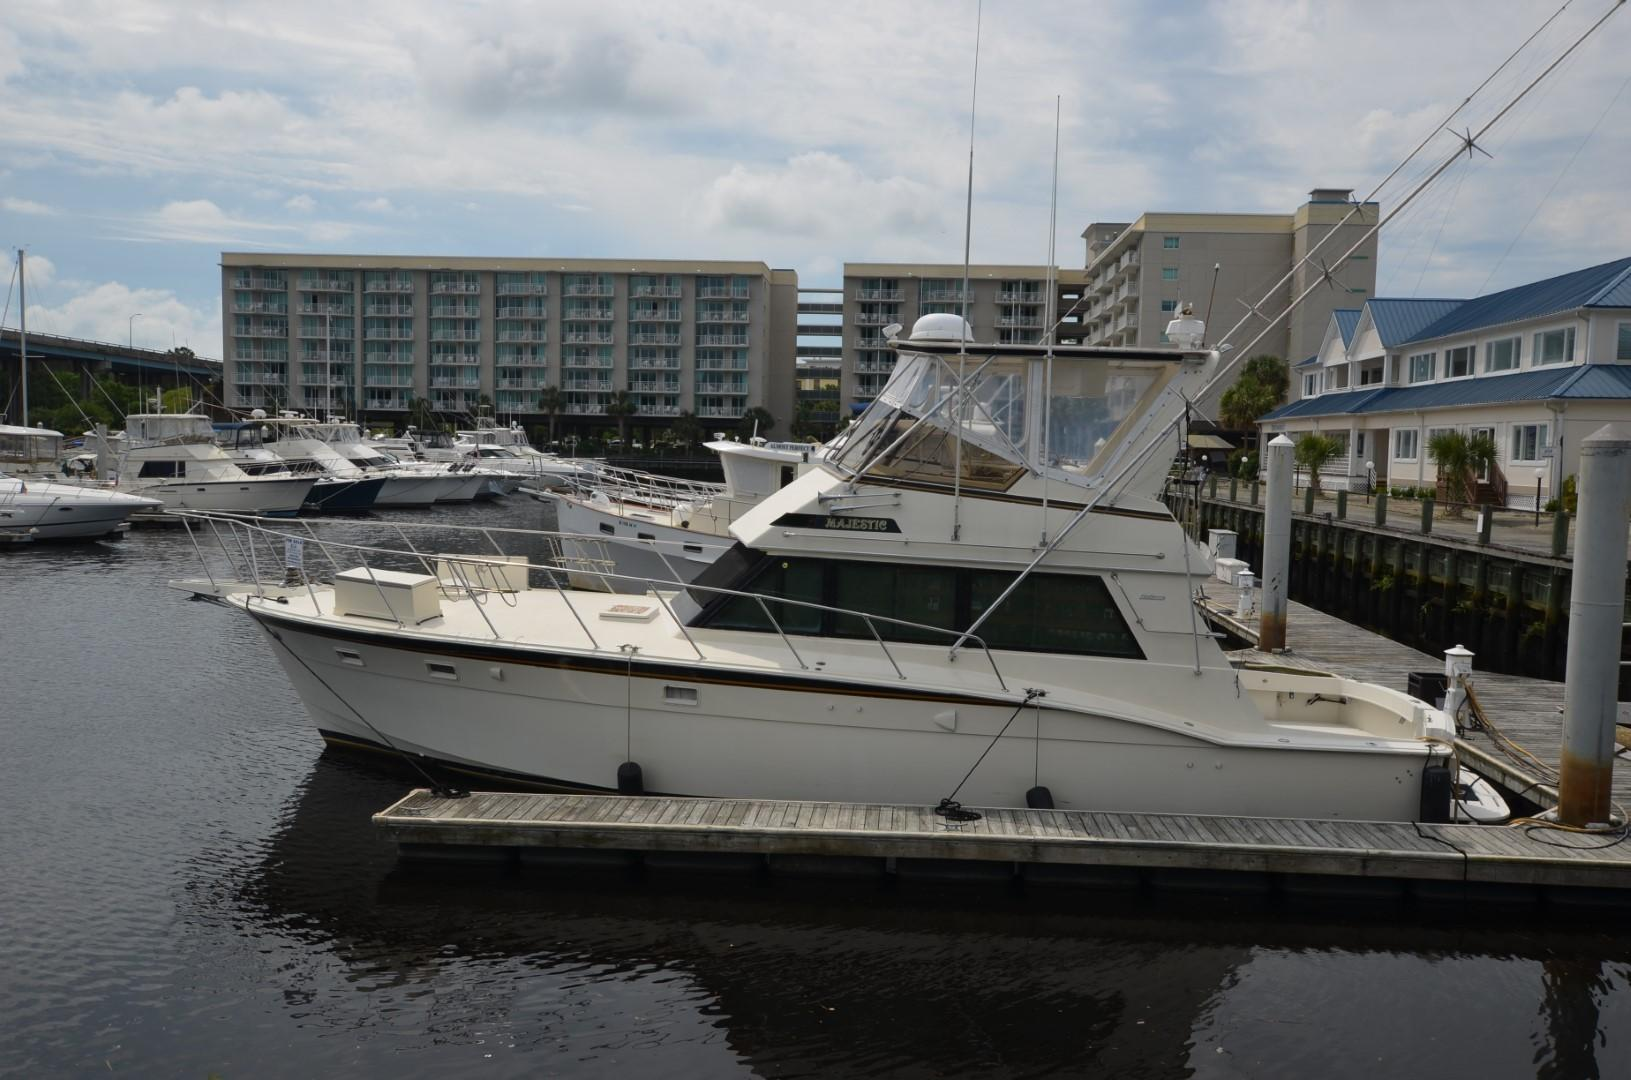 1983 Hatteras Convertible High-Performance